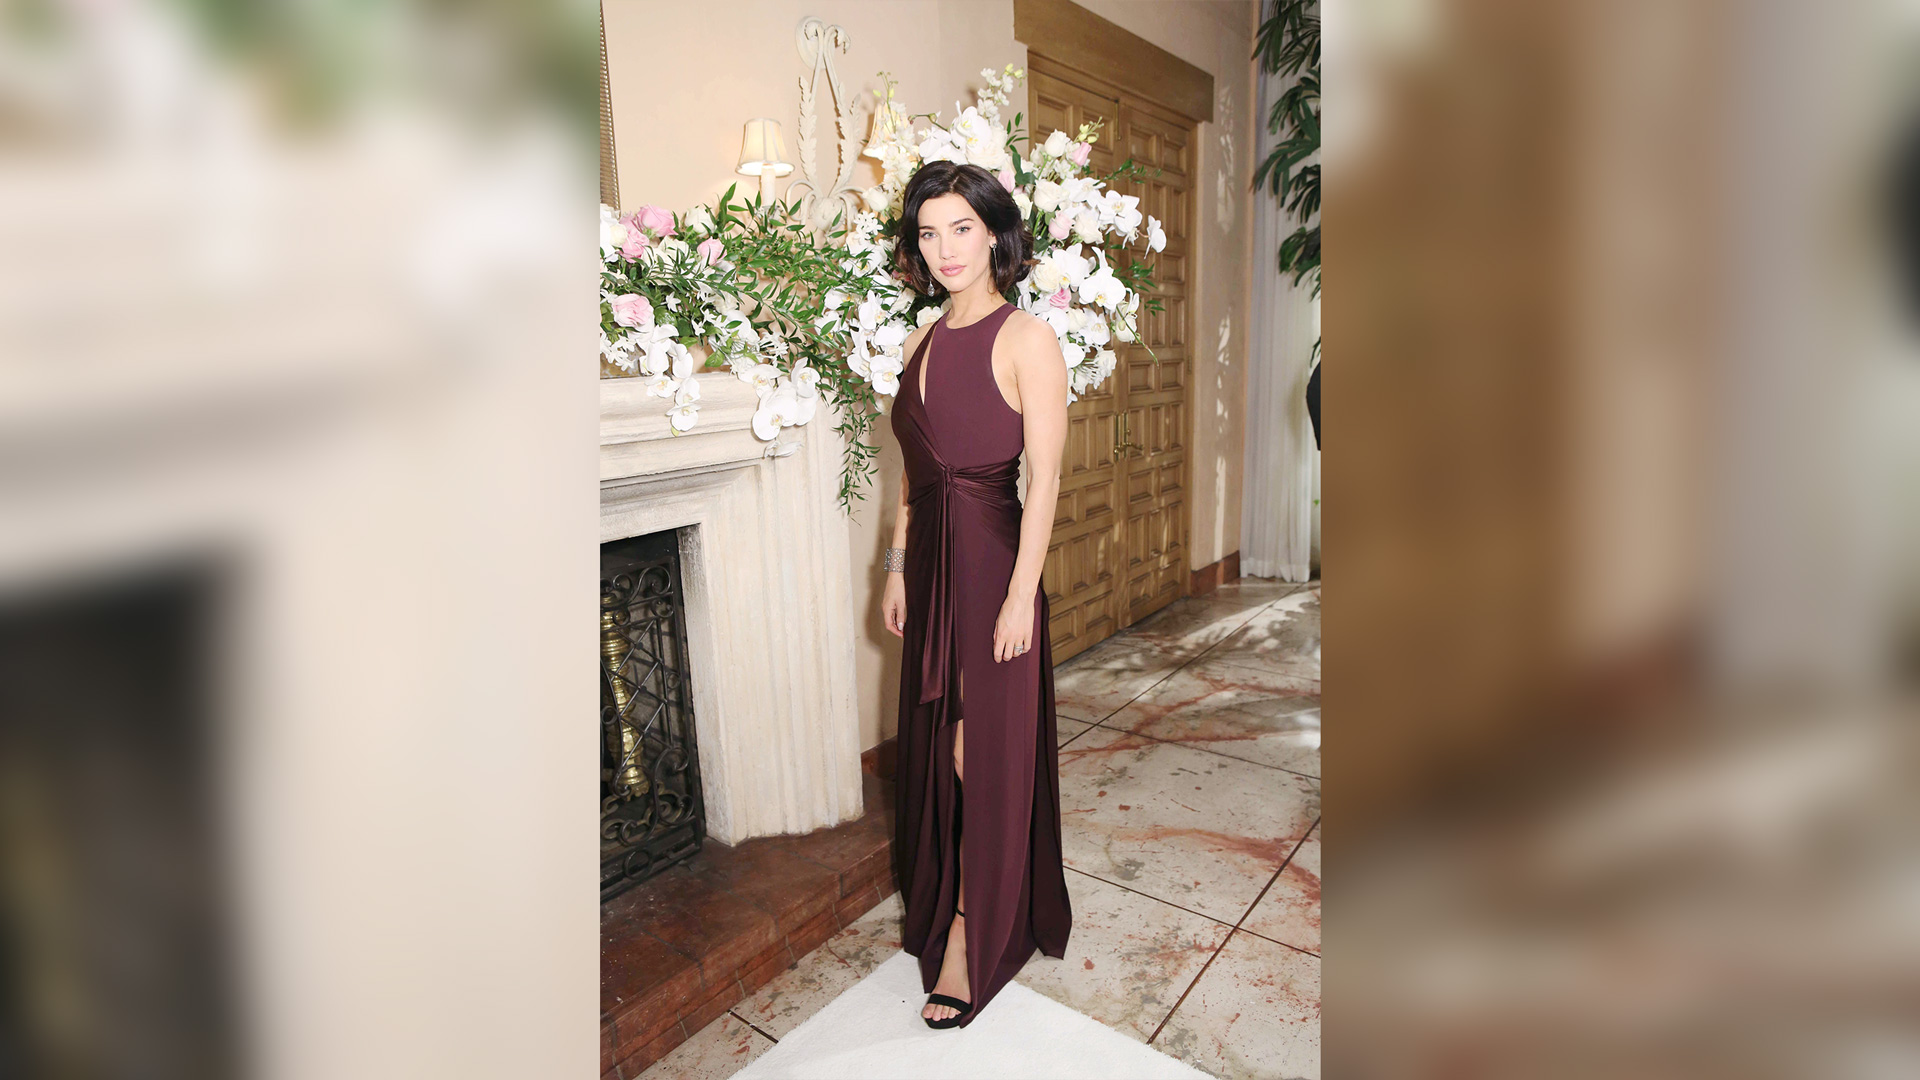 Steffy Forrester (Jacqueline MacInnes Wood) in a stunning evening dress.